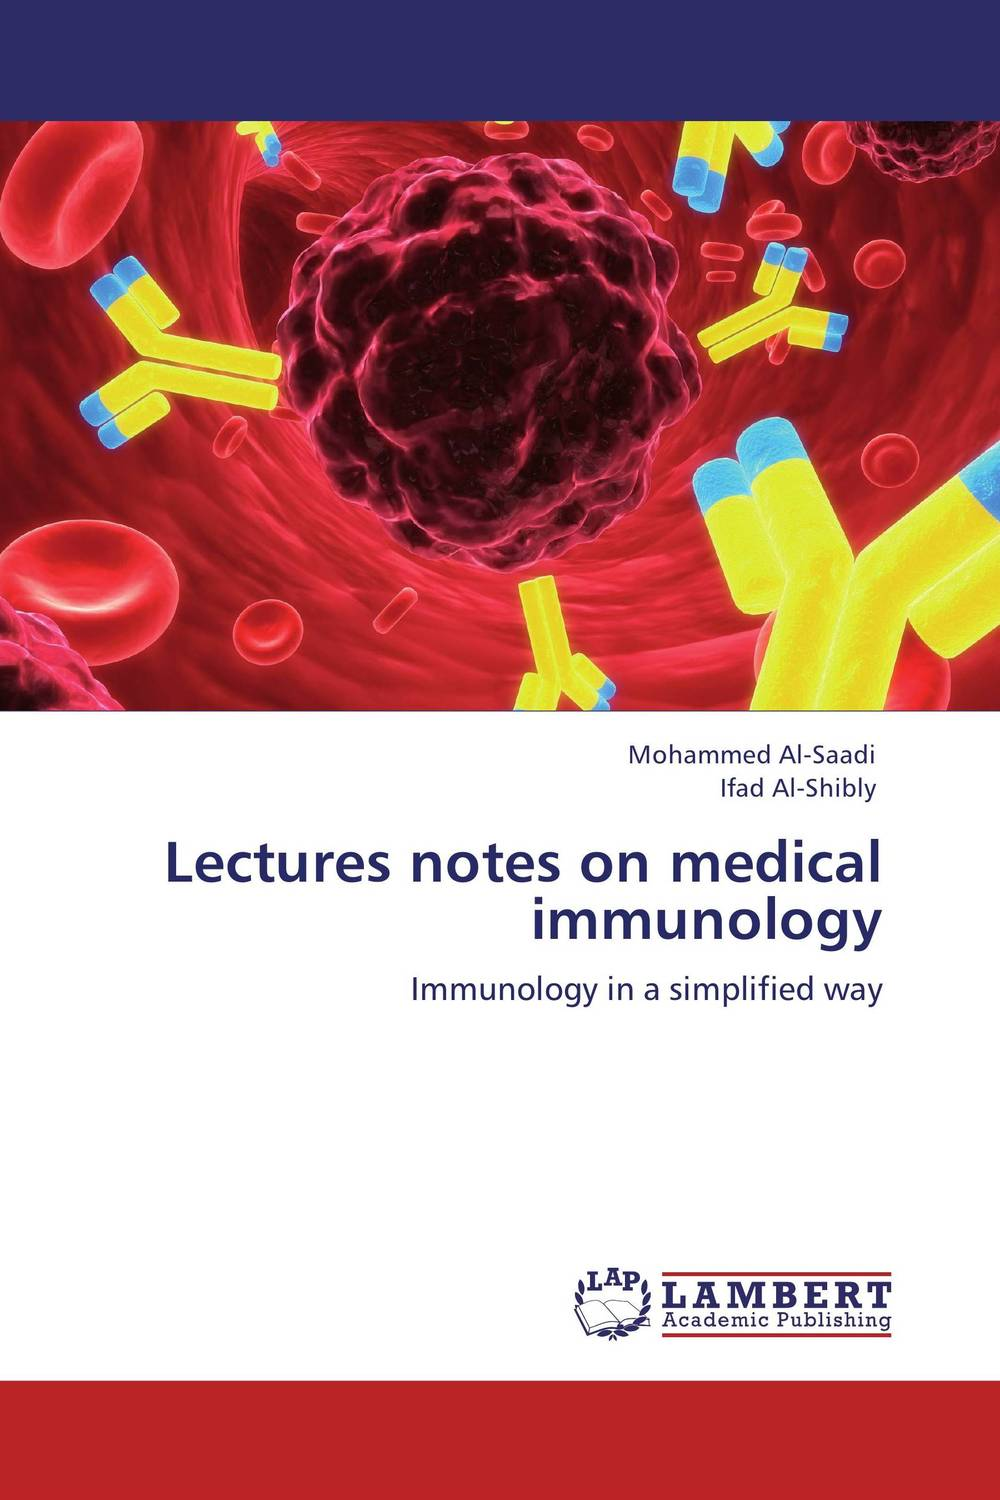 Lectures notes on medical immunology daily immune defense в москве